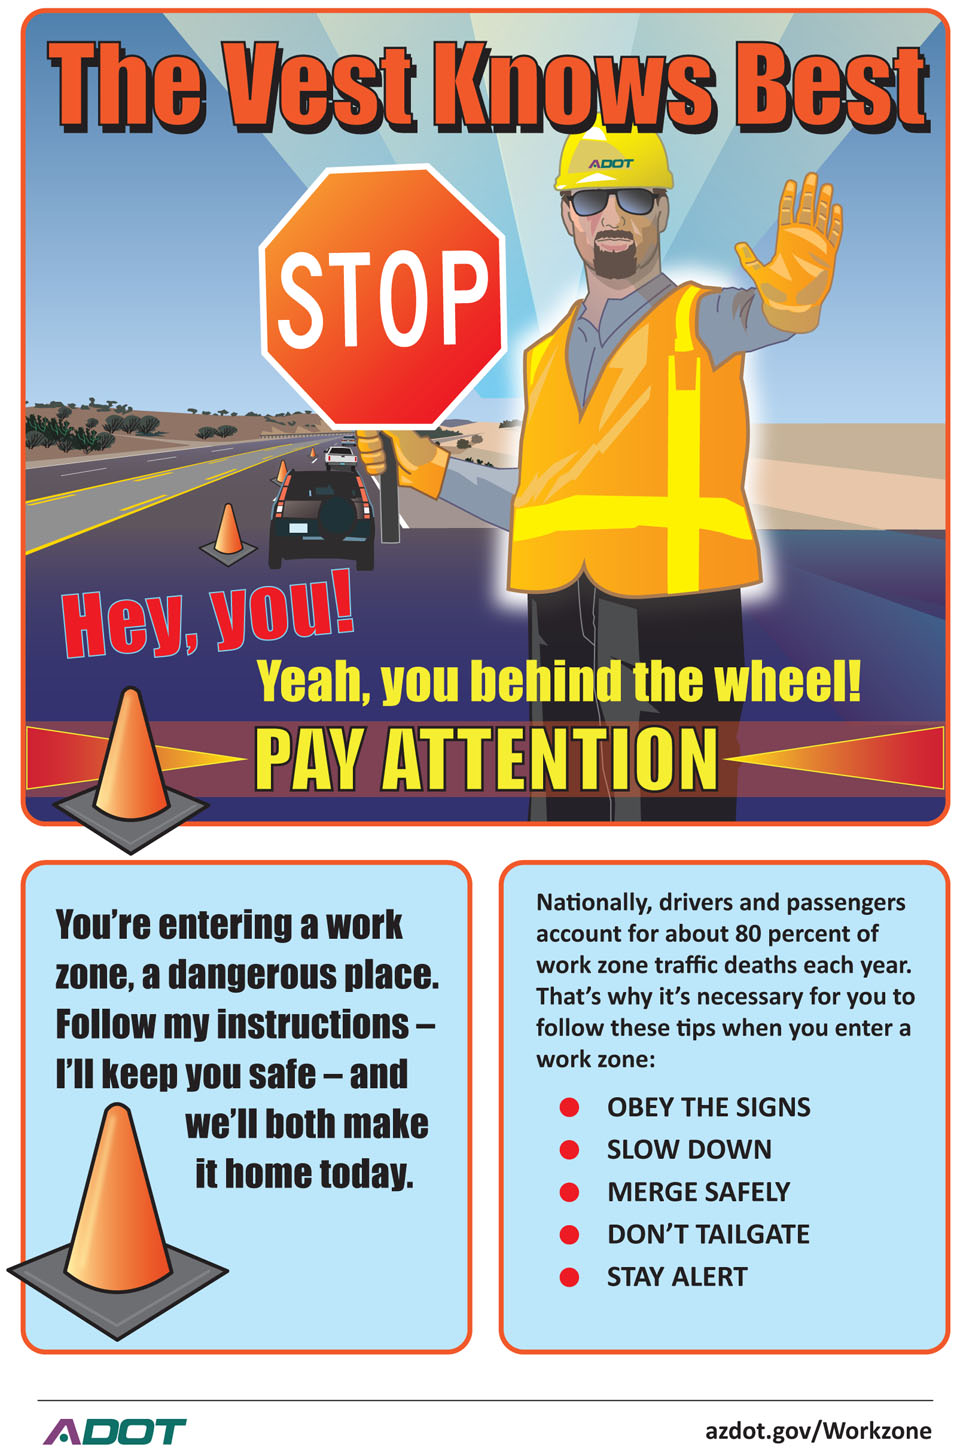 The Vest Knows Best infographic: Hey You! Yeah, you behind the wheel! Pay Attention